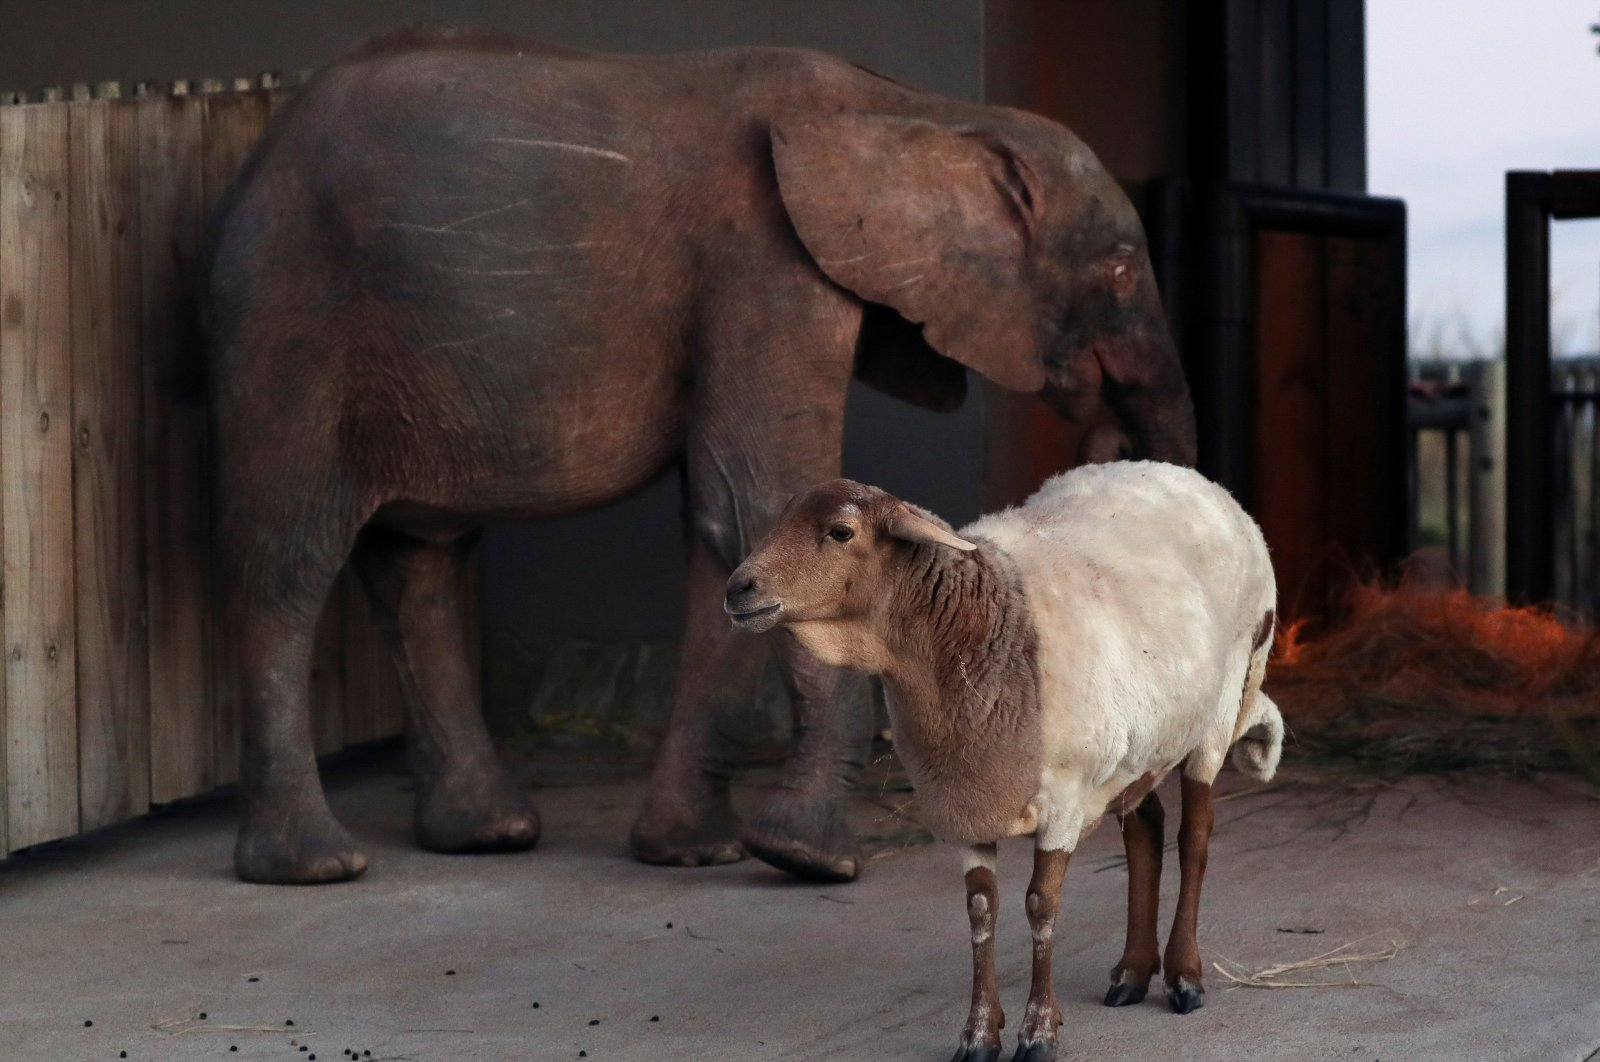 Khanyisa, an albino elephant calf rescued after being caught in a poaching snare, is seen with Lammie, her companion sheep and surrogate mother, at Hoedspruit Elephant Rehabilitation and Development (HERD) sanctuary, near Hoedspruit, South Africa, May 23, 2021. (Reuters Photo)